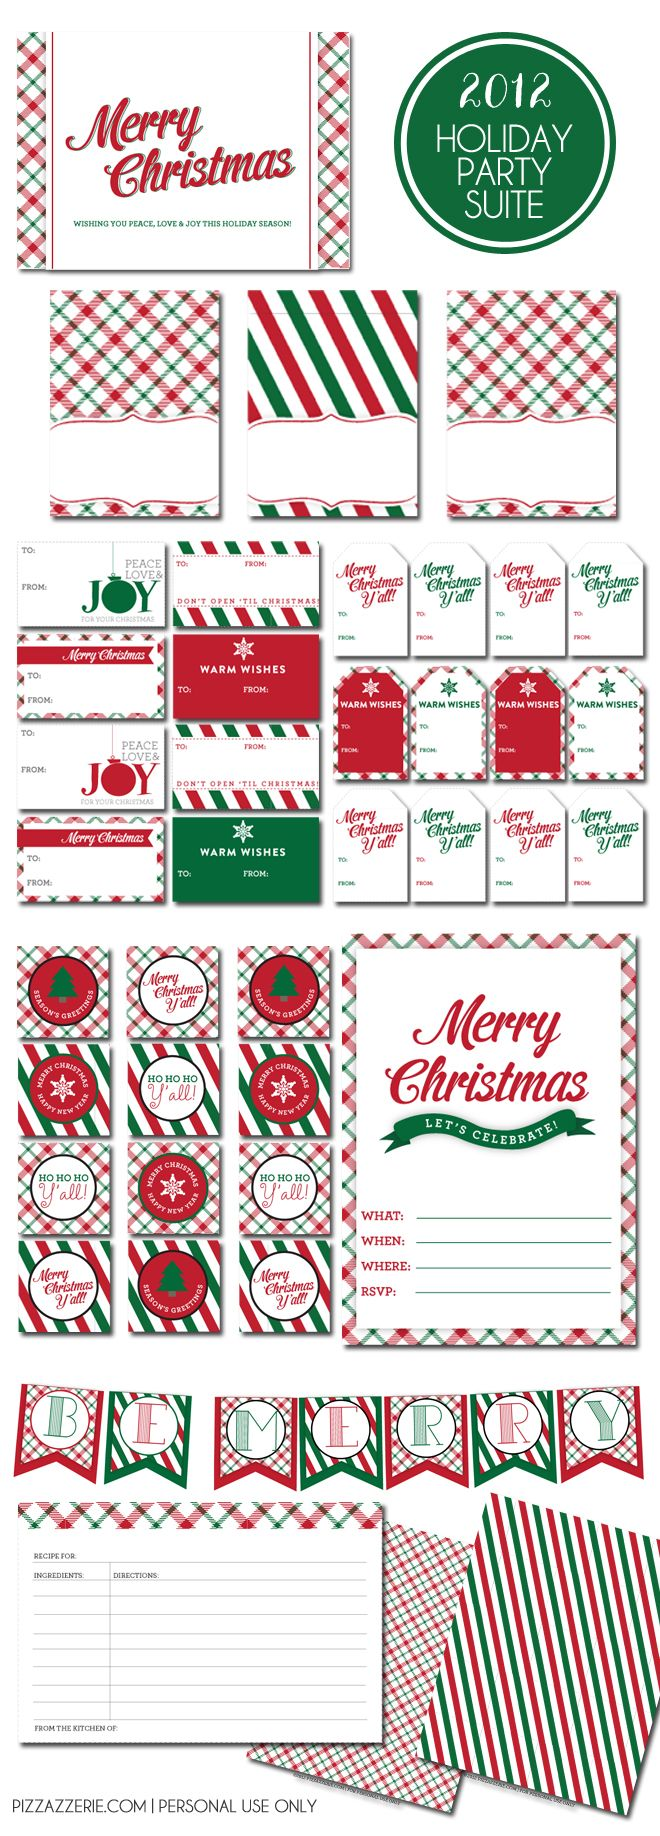 holiday printable collection 2 color schemes party traditional holiday party printables contains invites recipe cards food tent cards